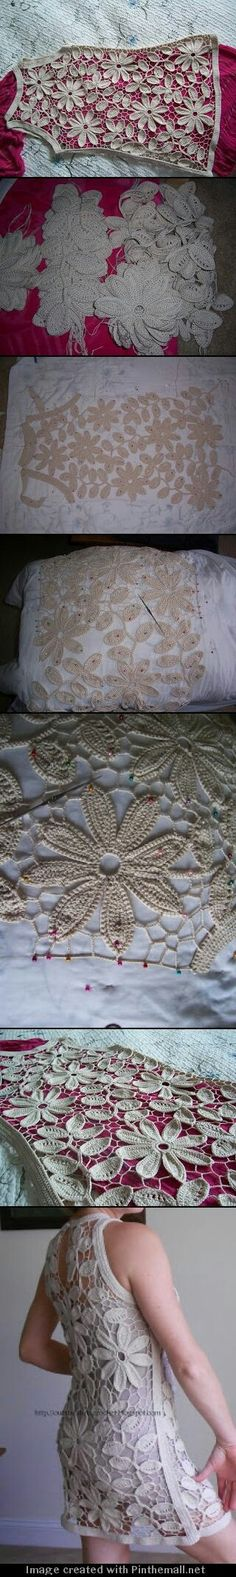 russian irish crochet from outstanding crochet - stunning dress. I can't wait till I am good enough to accomplish something so glorious as this. Filet Crochet, Freeform Crochet, Crochet Motif, Crochet Designs, Crochet Flowers, Crochet Lace, Crochet Stitches, Crochet Patterns, Doilies Crochet